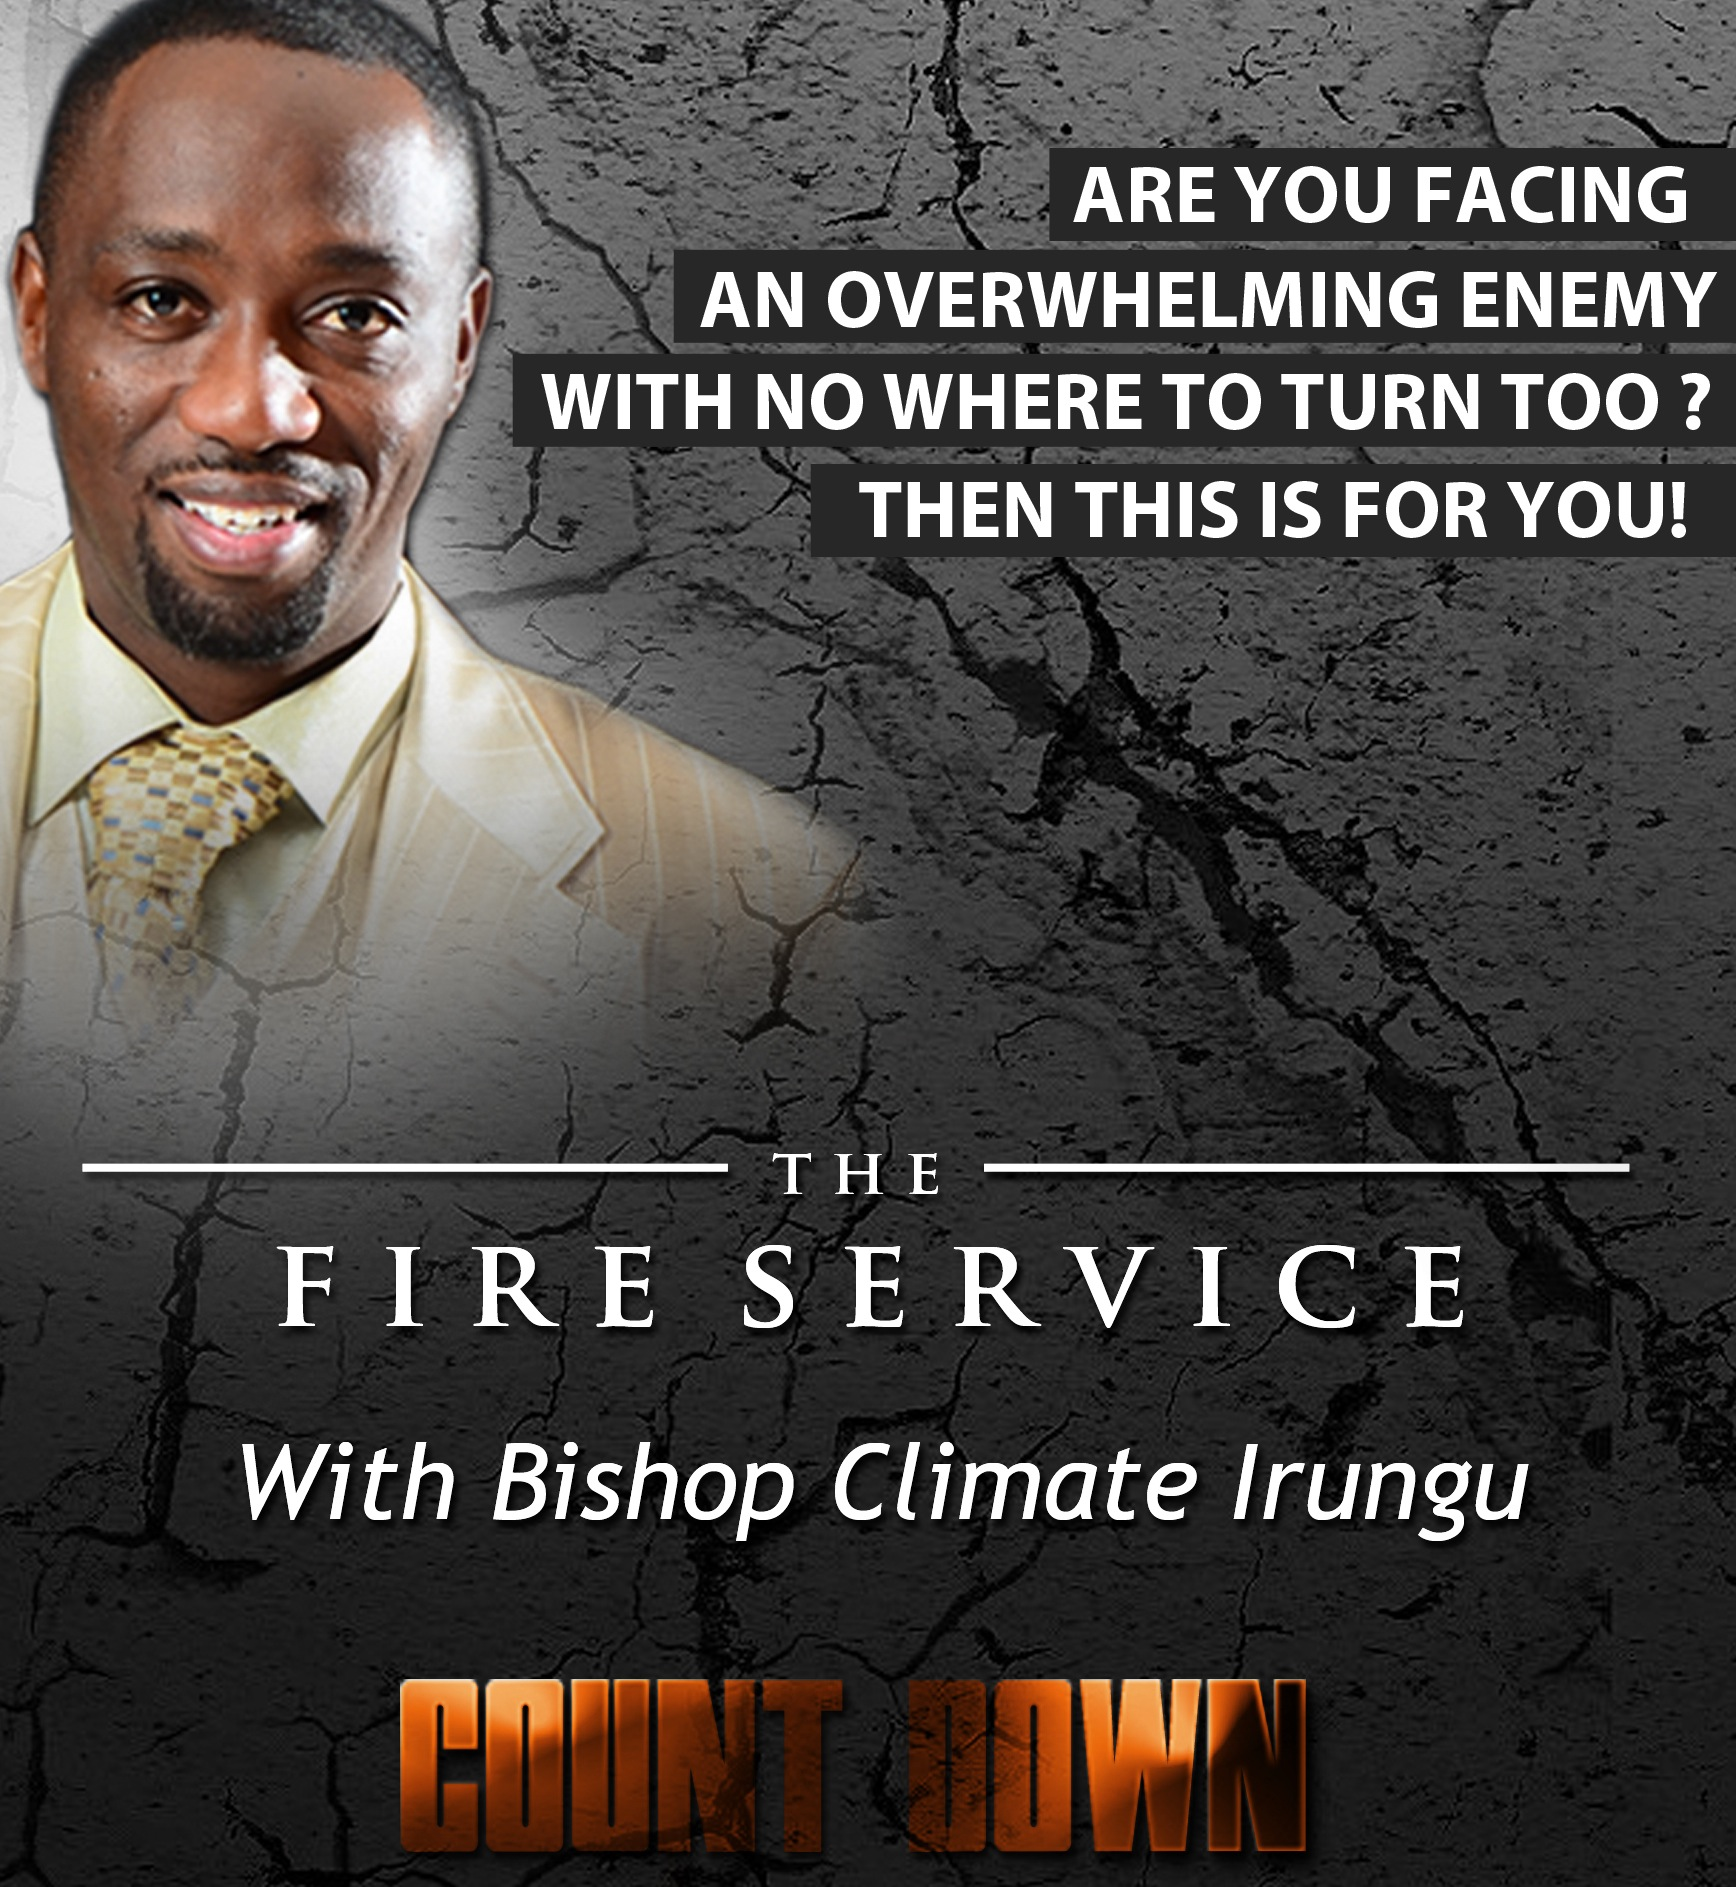 Get Ready This Friday for Another Fire Night Service!